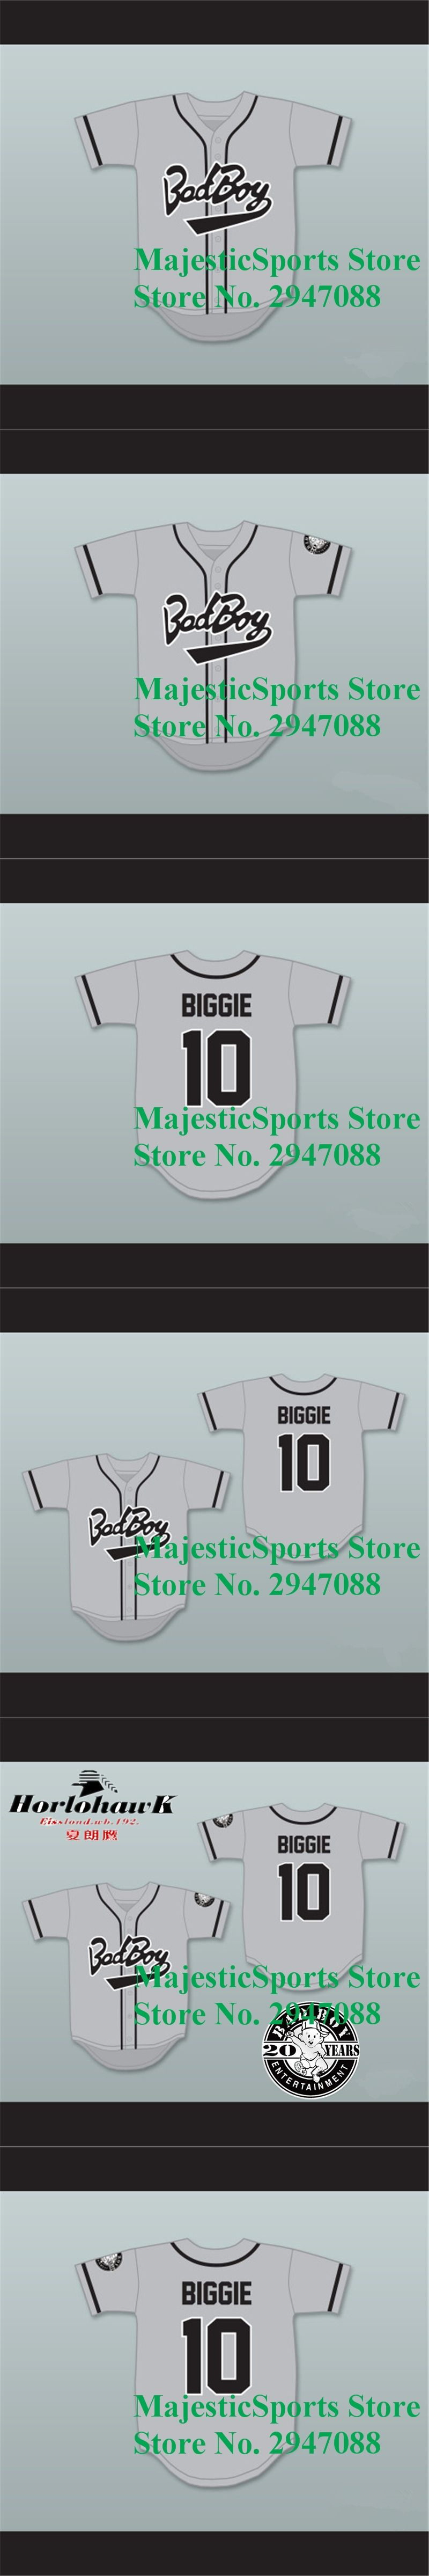 Bad Boy  10 Baseball Jersey Biggie Embroidery Stitched High Quality Gray  Jersey with 20 Years 4c18e2b0b194